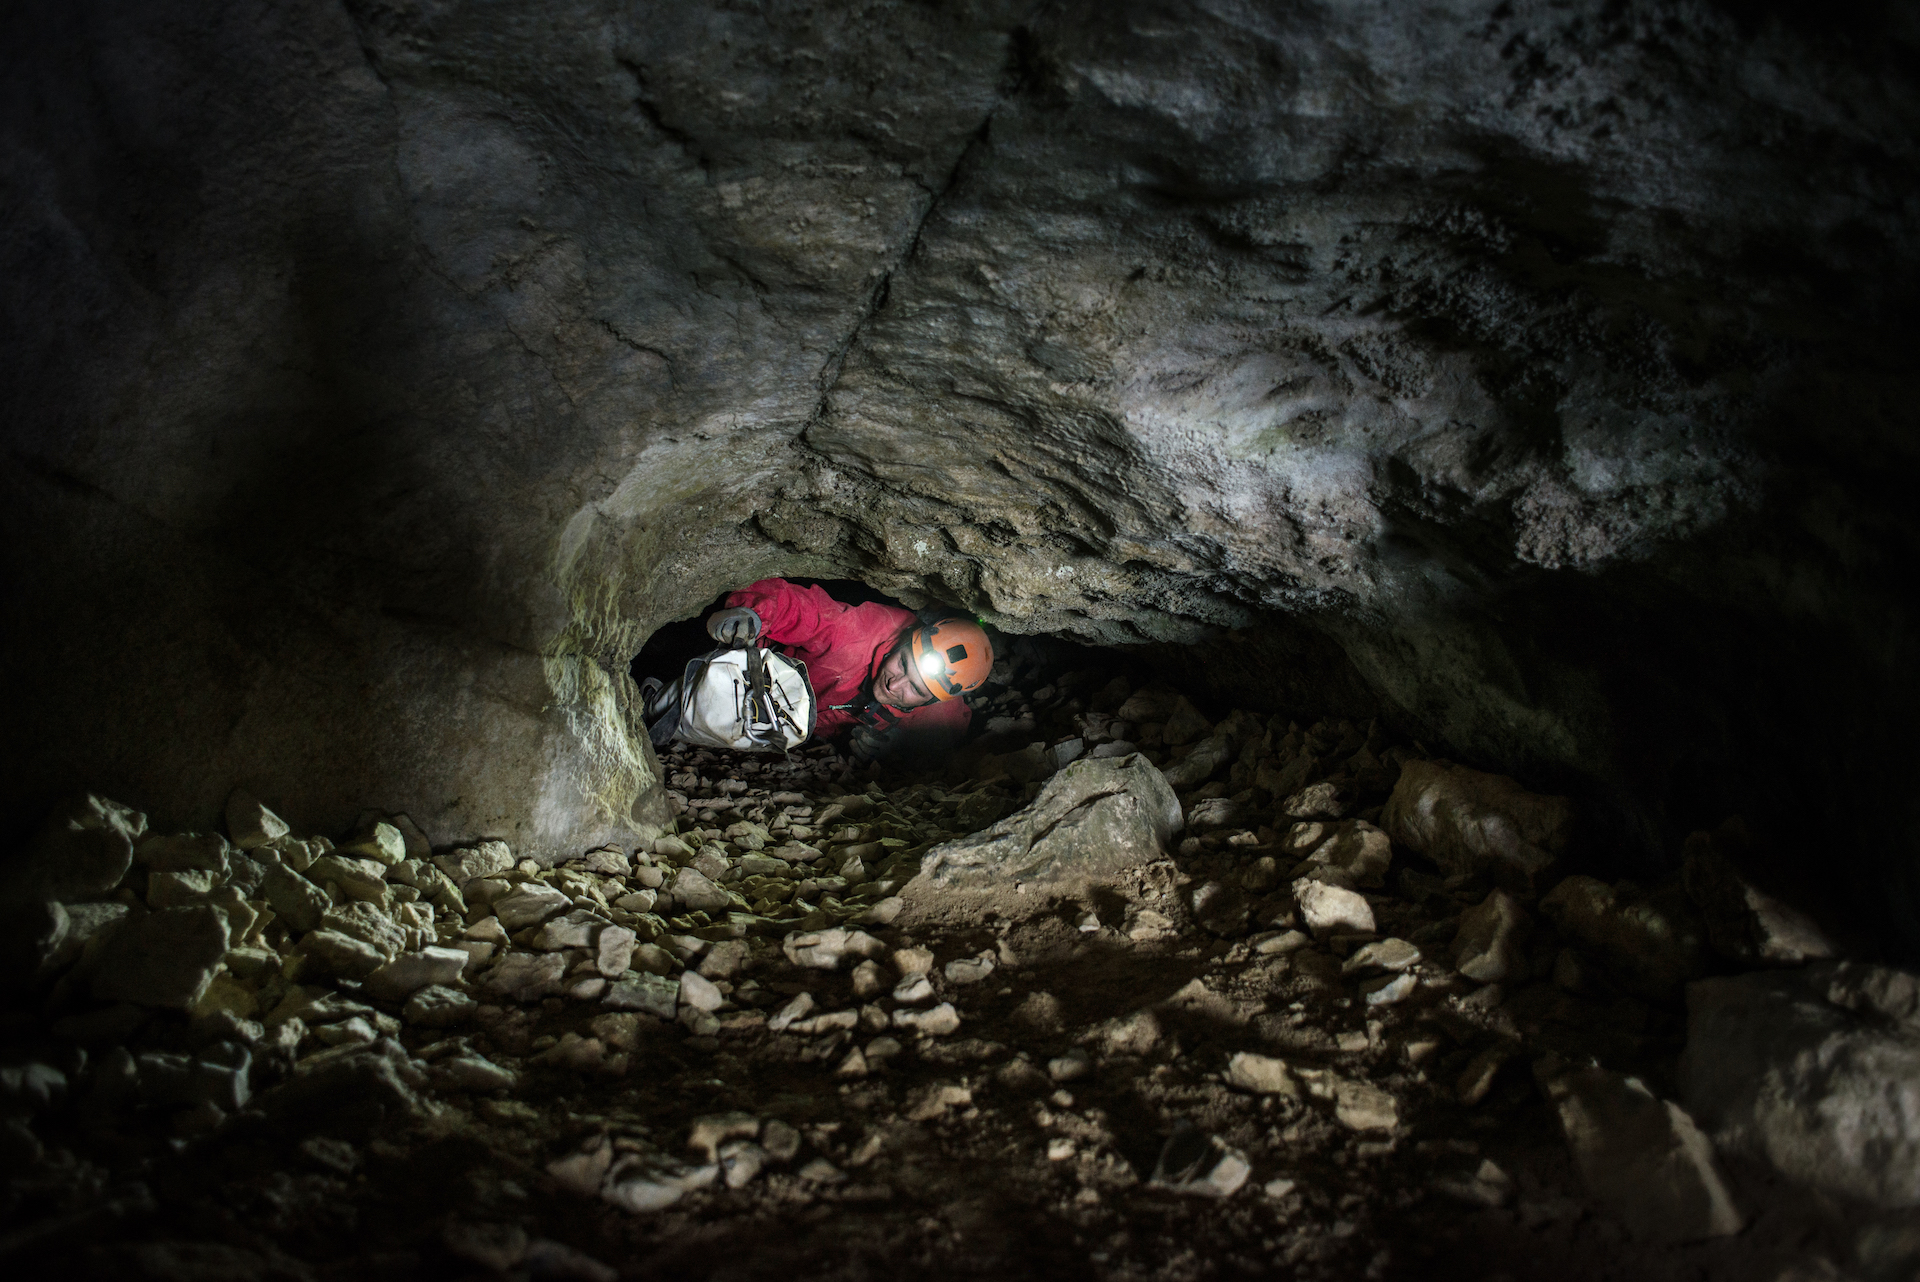 Mel Nickerson-Caving Bulmer DSC_0715 EDIT 2019_Web_Res.jpg